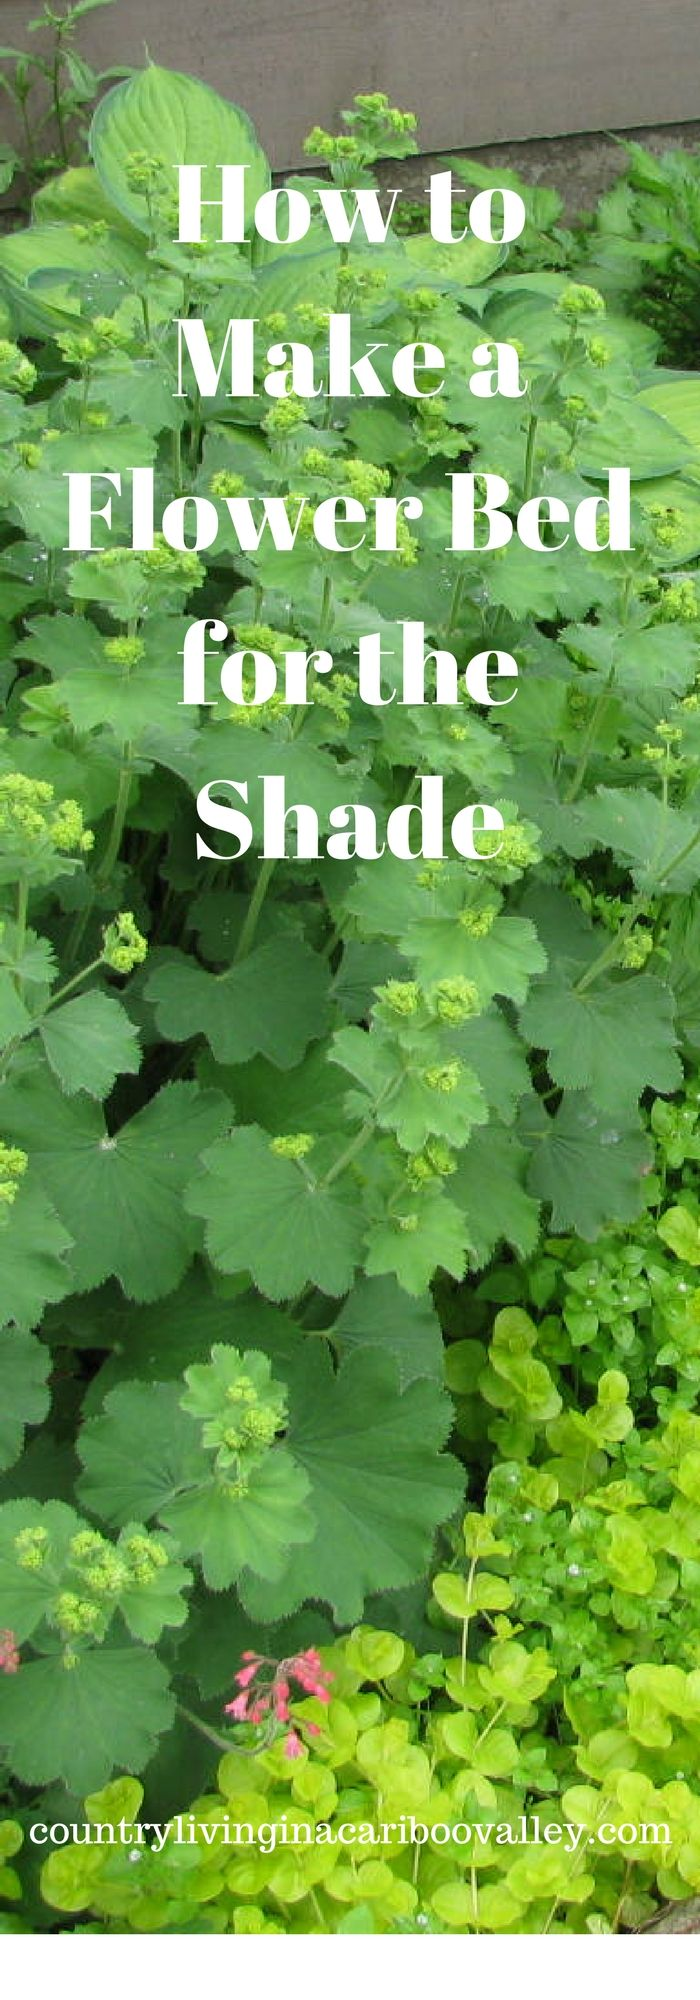 Shade flower gardens - Best 25 Shade Garden Ideas On Pinterest Shade Plants Shade Landscaping And Shade Garden Plants